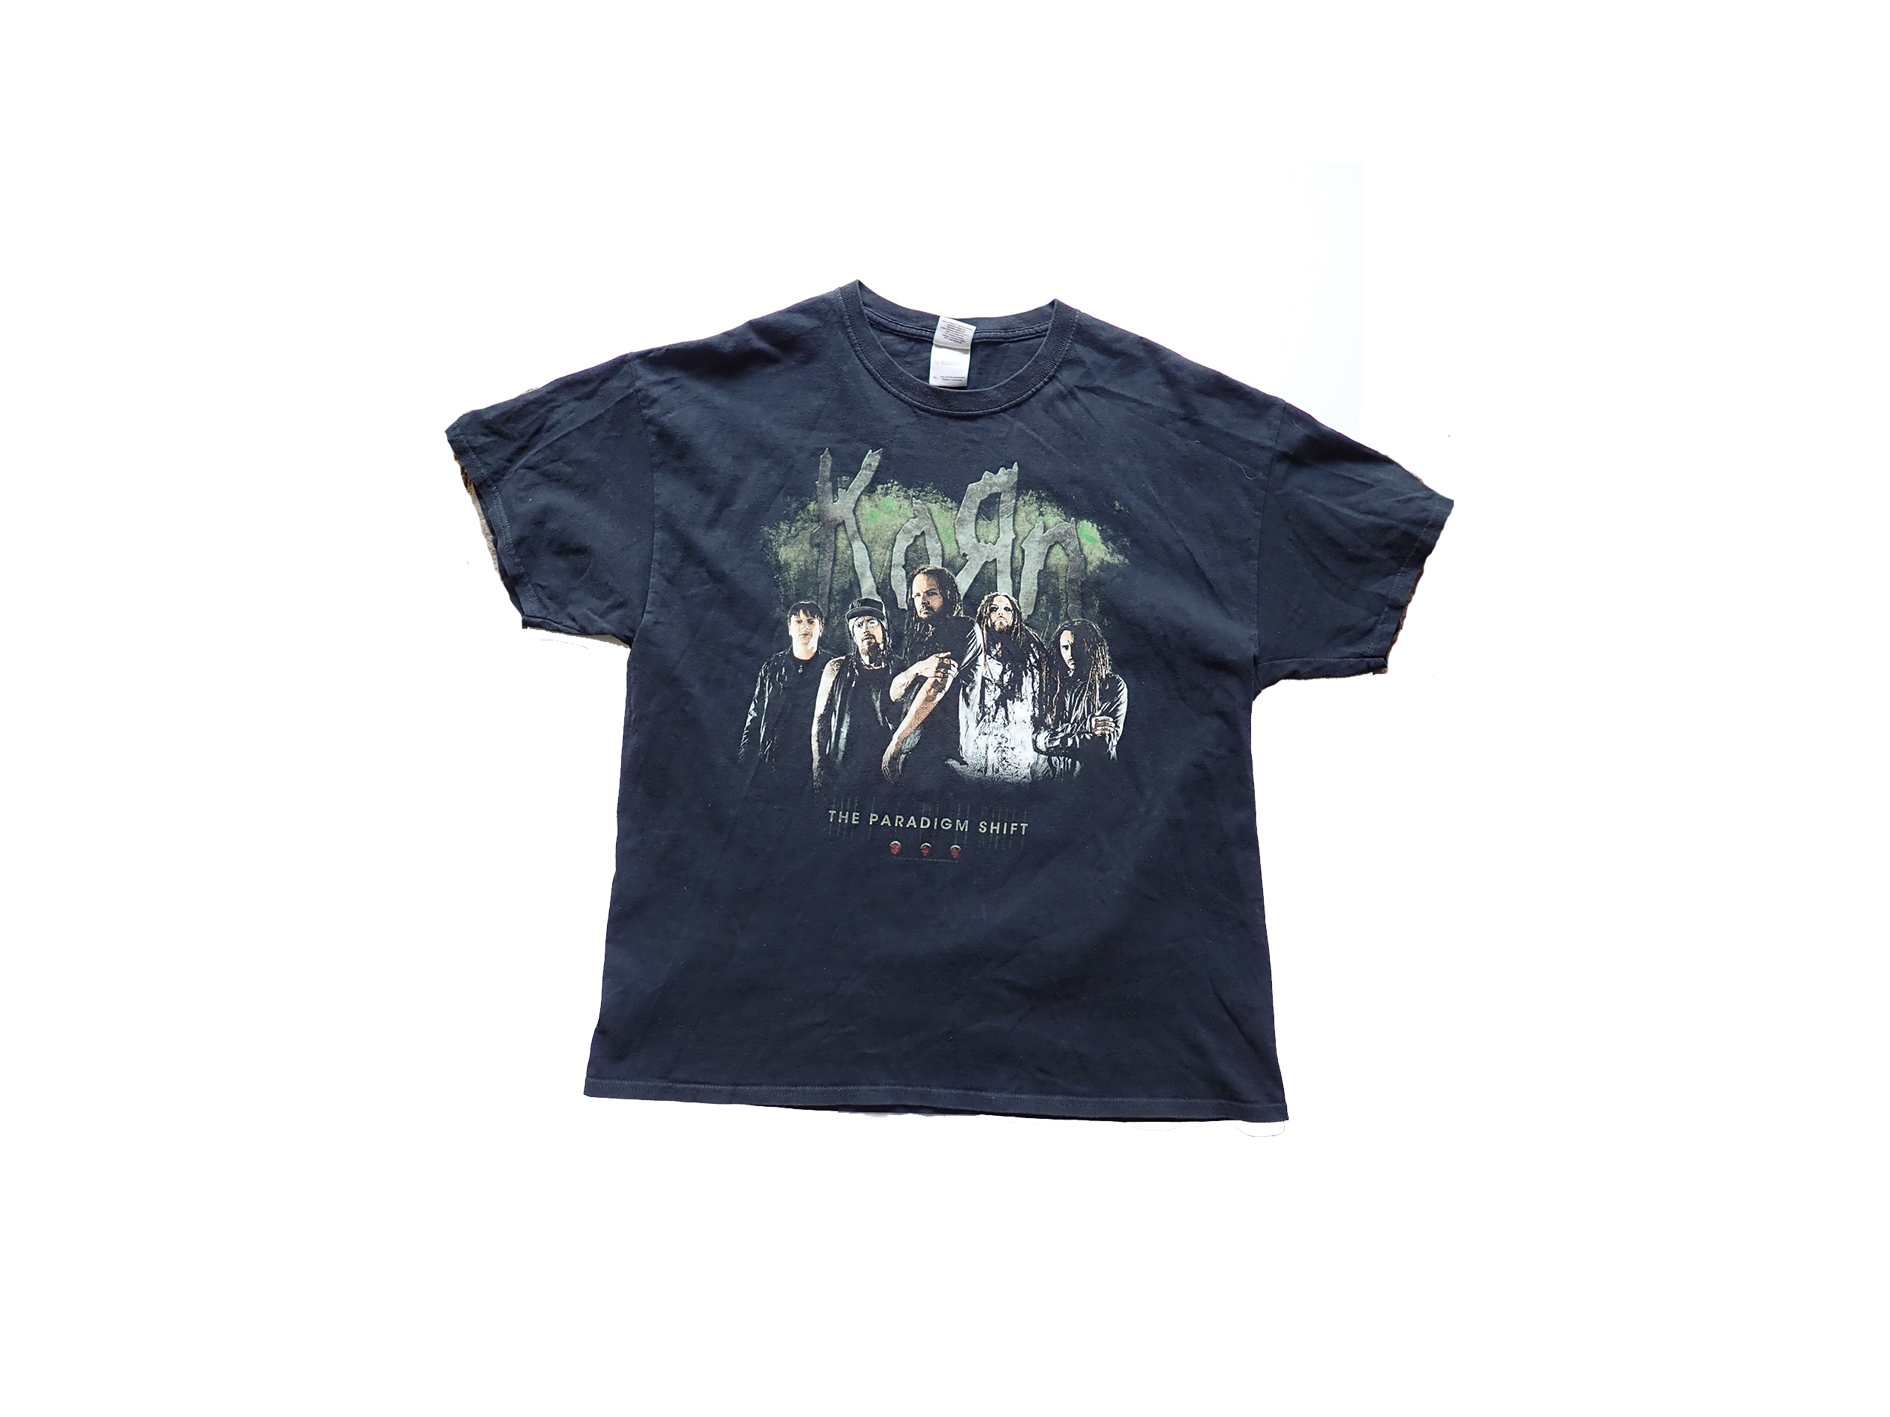 Korn 2014 Tour T Shirt